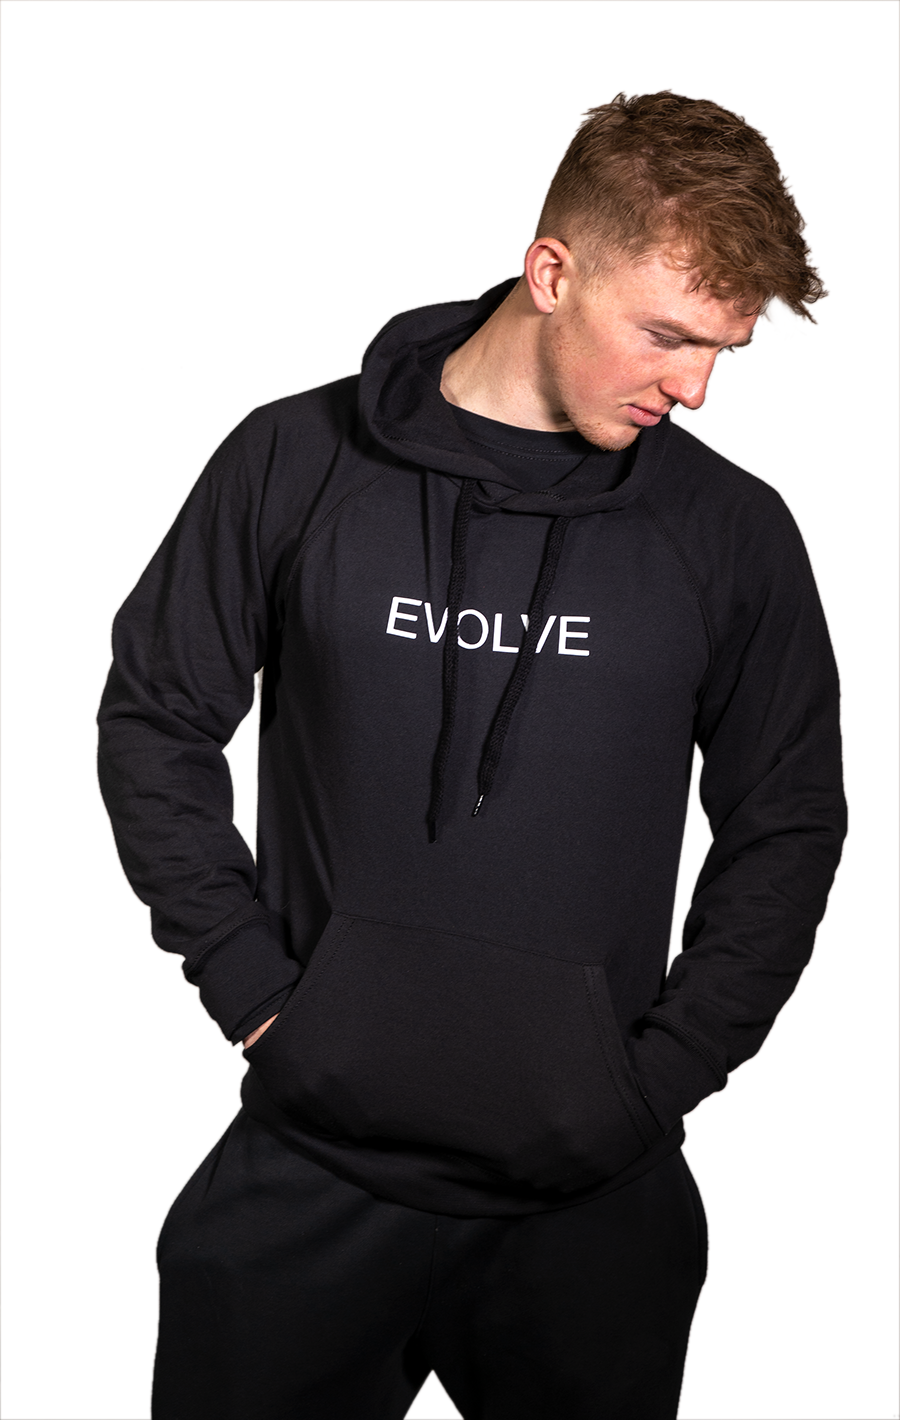 Lightweight Black Hoodie with White Evolve